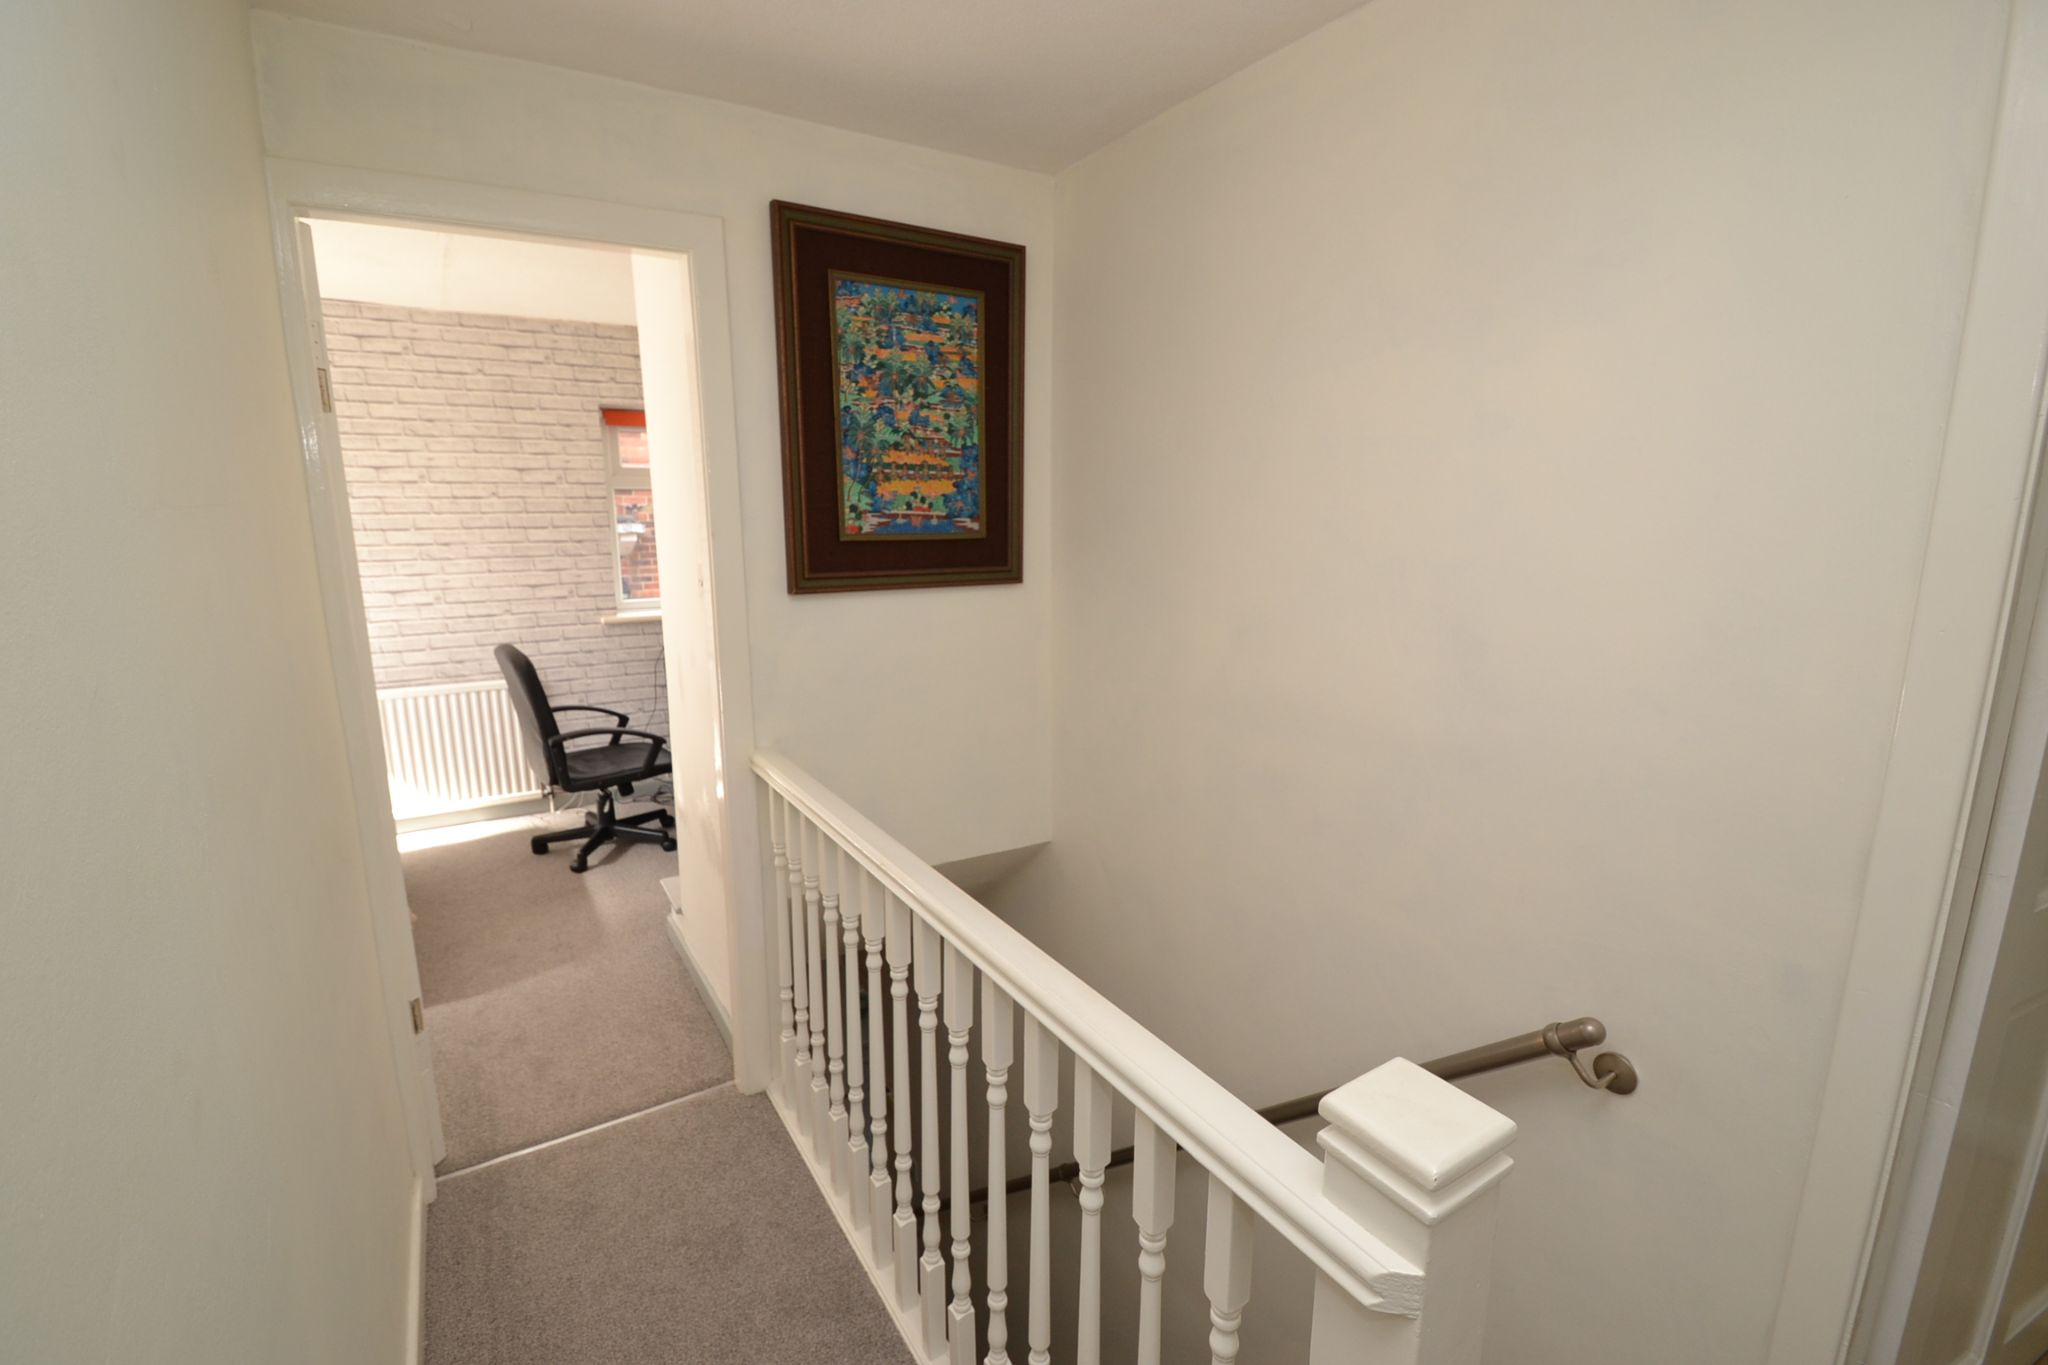 3 Bedroom Semi-detached Dormer House For Sale - Photograph 12